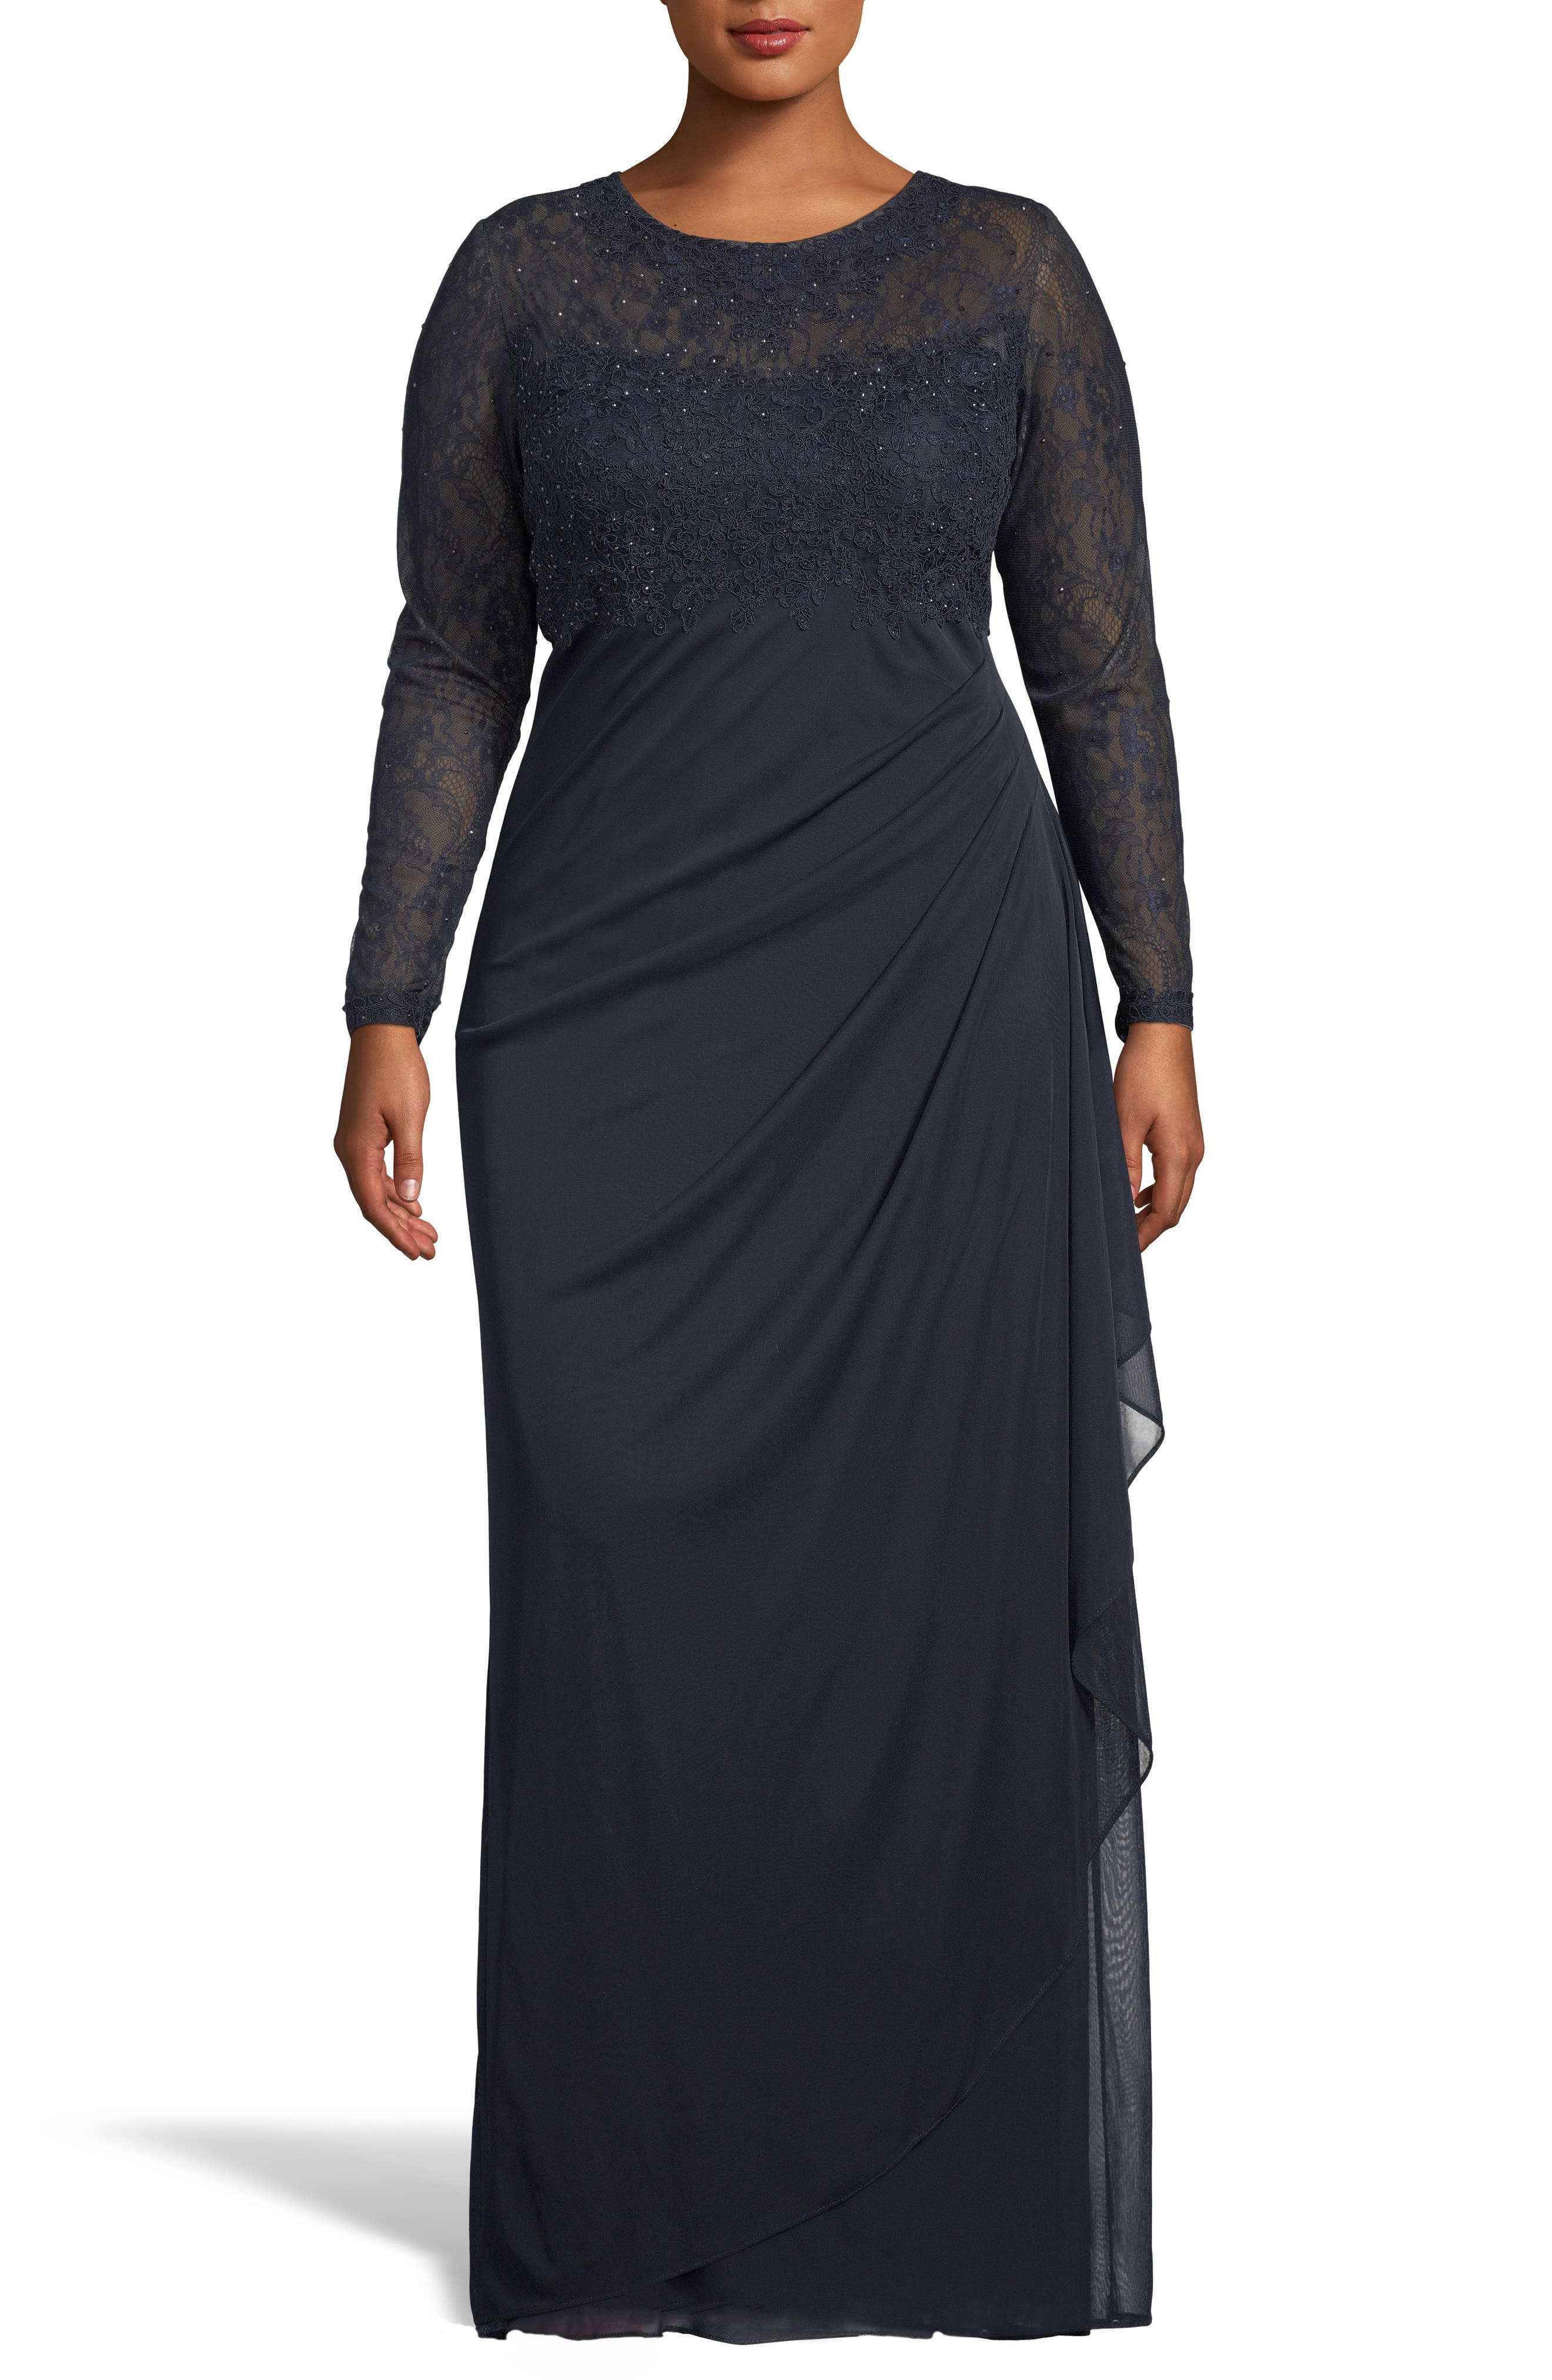 XSCAPE Lace Bodice Ruched Evening Dress, Main, color, NAVY